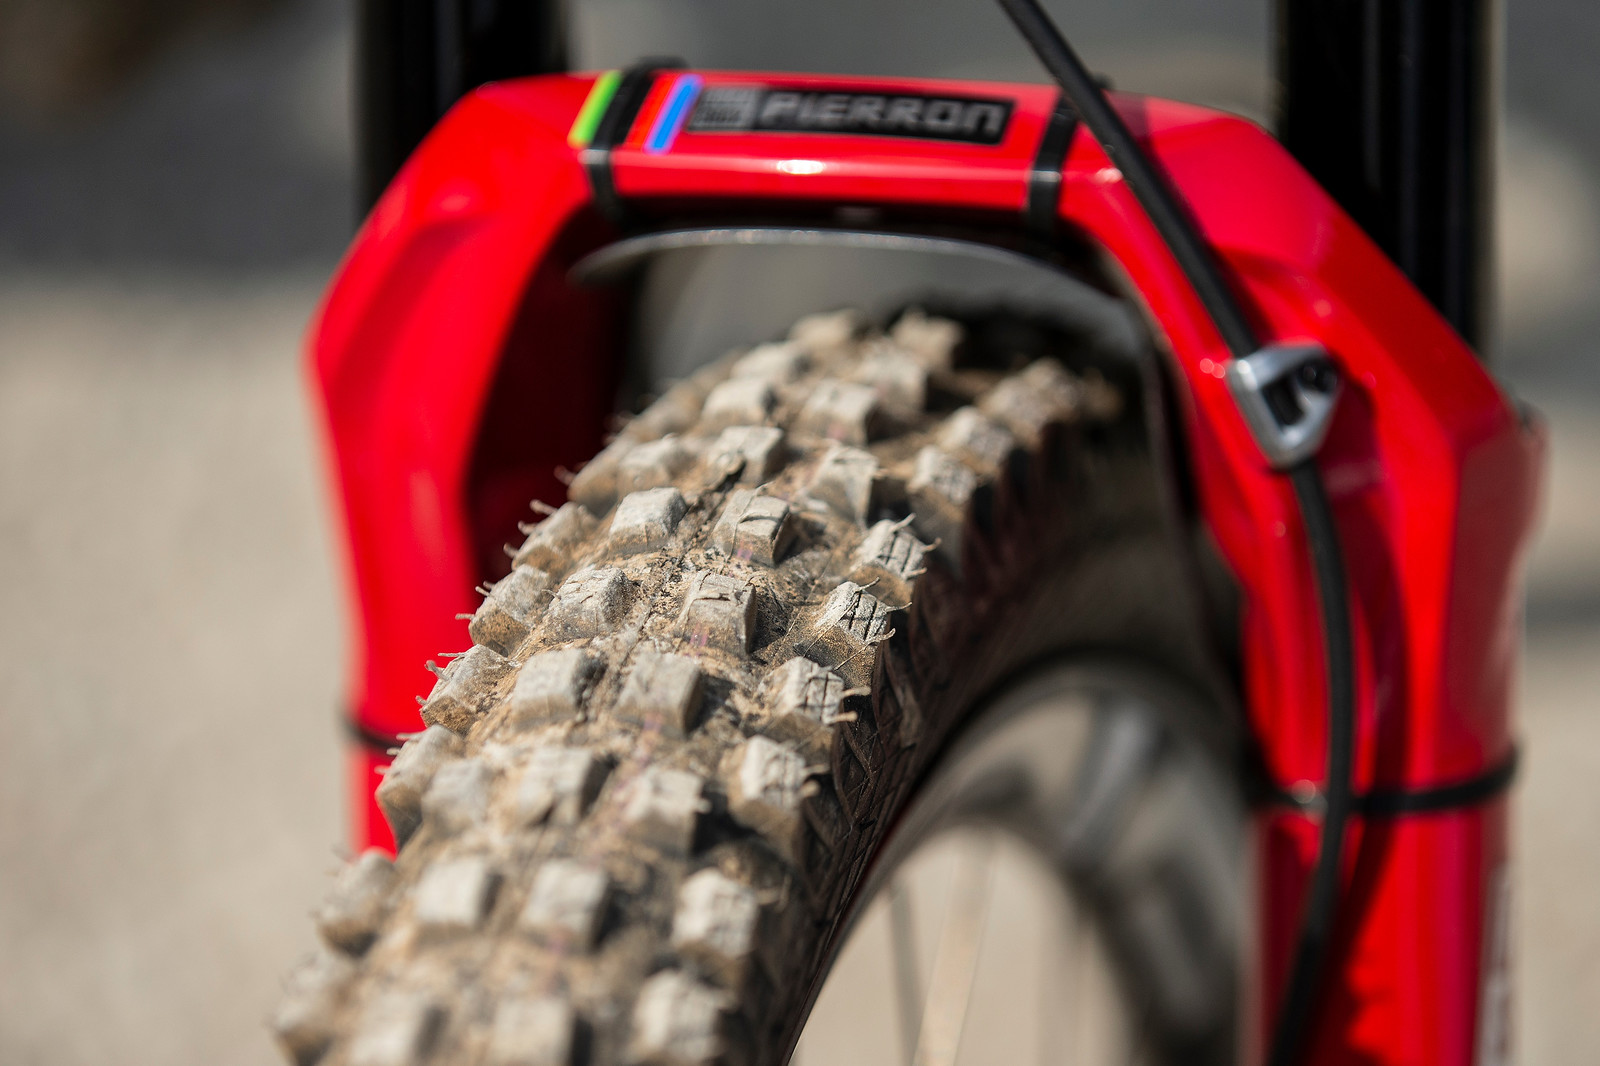 Schwalbe Magic Mary Front and Rear - WINNING BIKE - Amaury Pierron's Commencal Supreme DH - Mountain Biking Pictures - Vital MTB